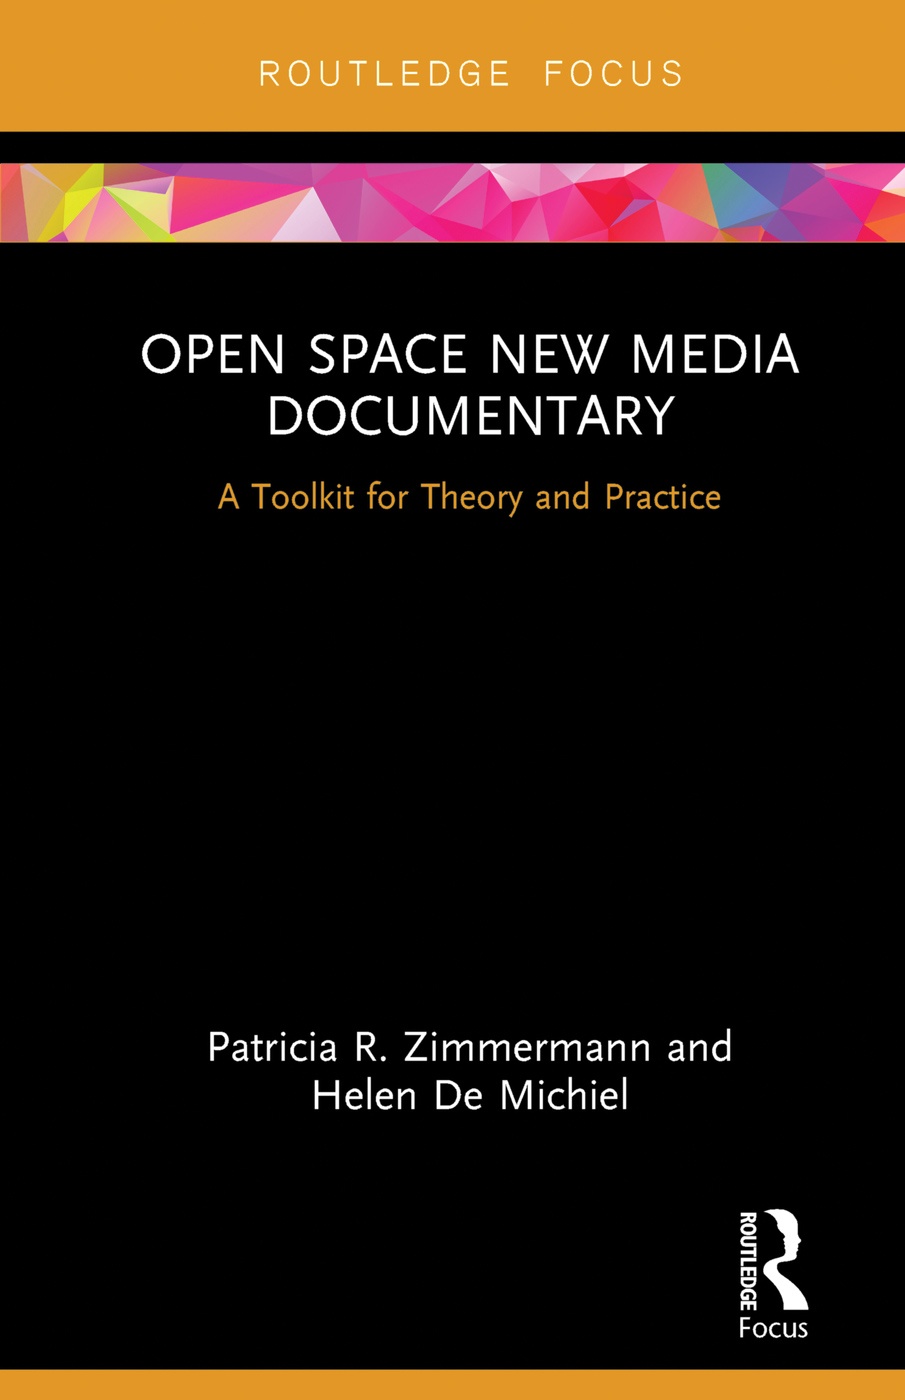 Open Space New Media Documentary: A Toolkit for Theory and Practice Patricia R. Zimmerman and Helen De Michiel Routledge 2018